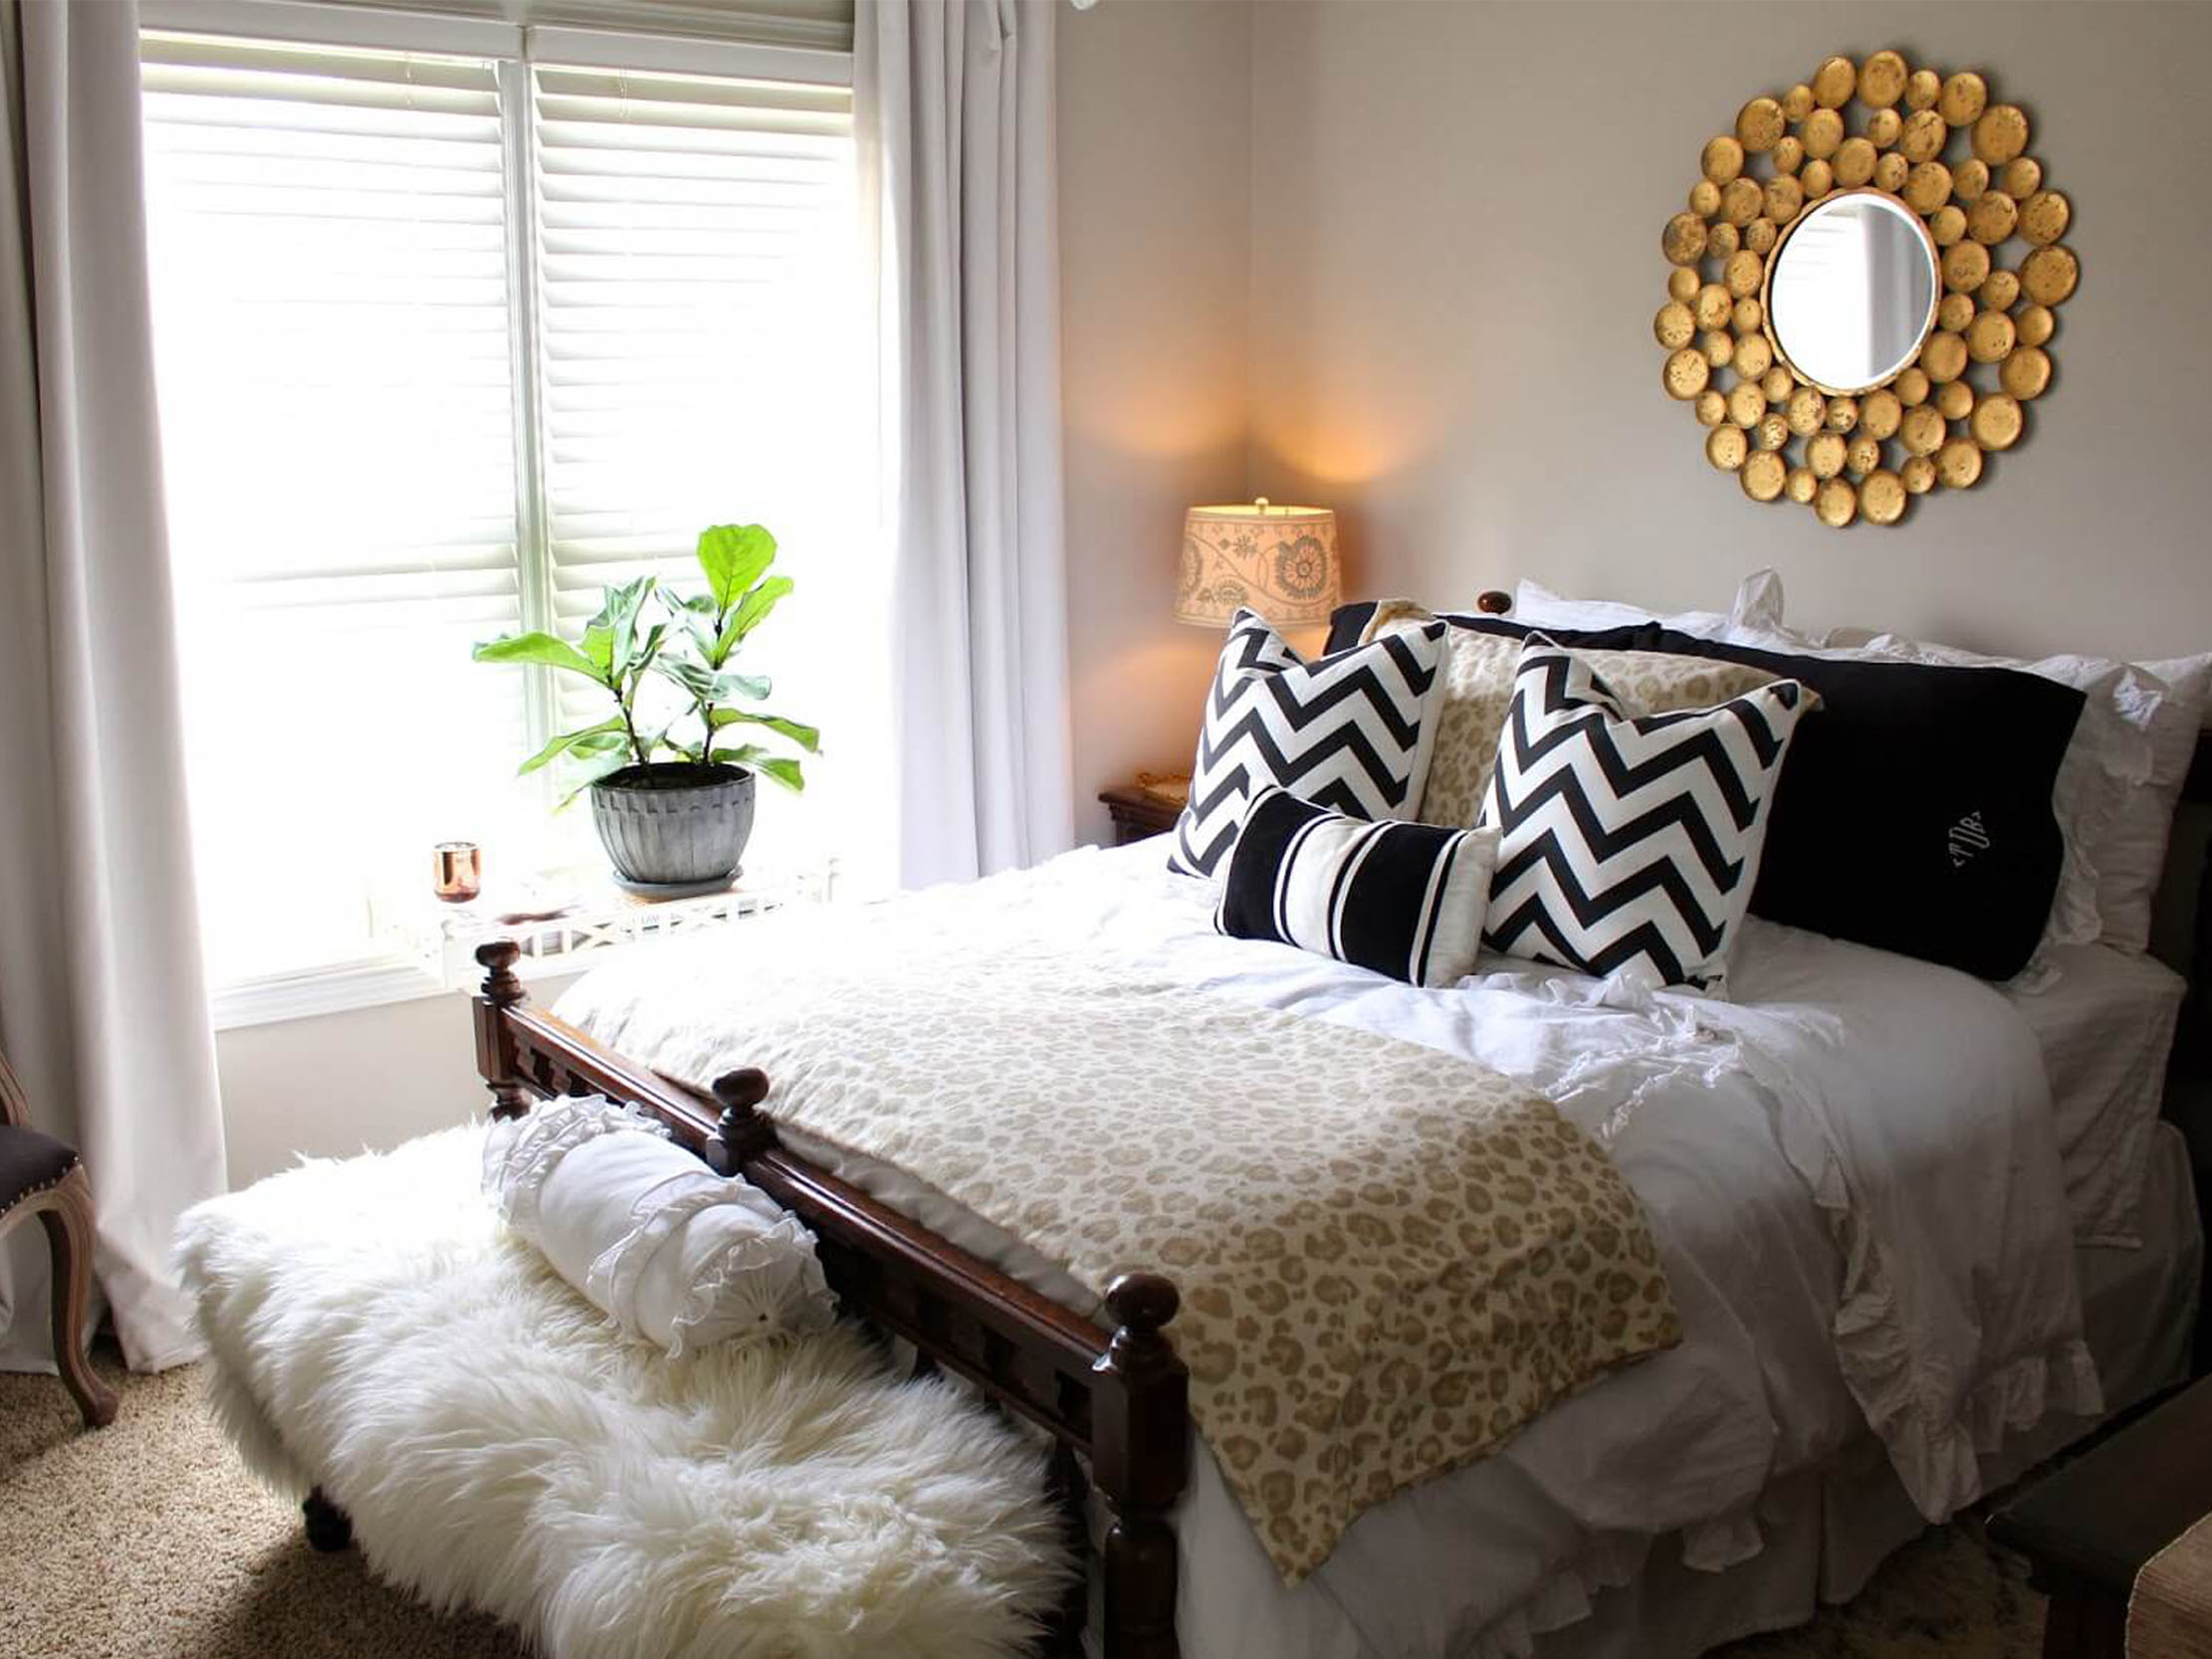 Get Your Guest Room Ready for Holiday Guests